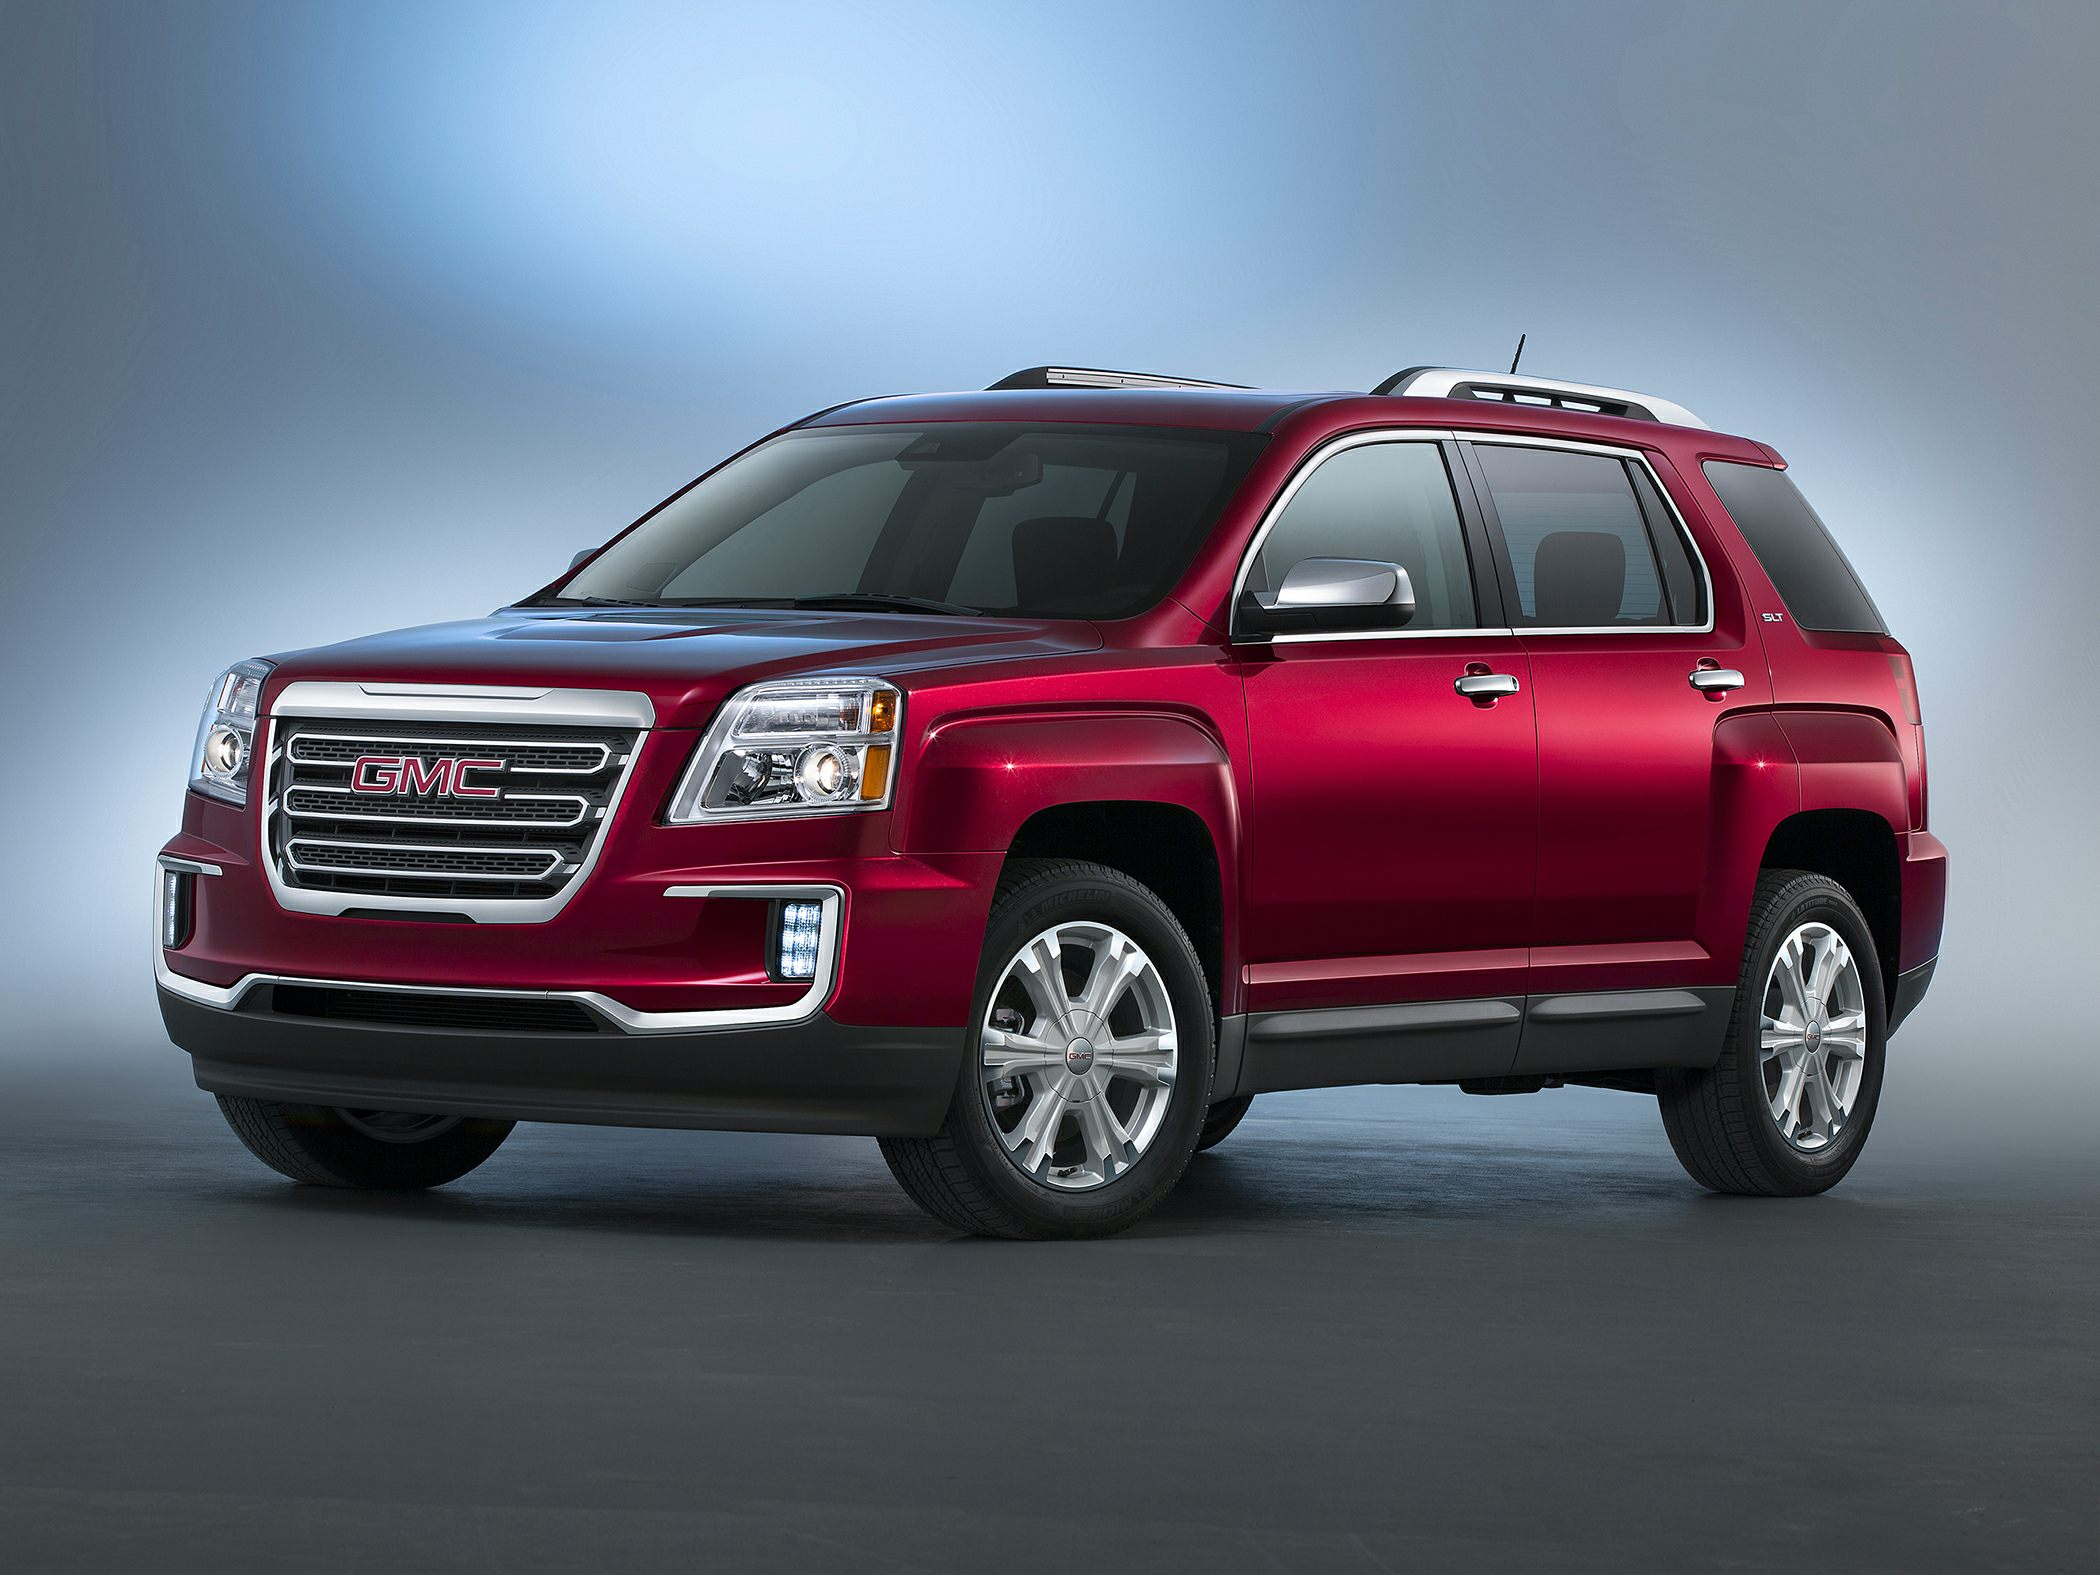 2018 GMC Terrain loses the V6 and gains a diesel for an all-turbo ...